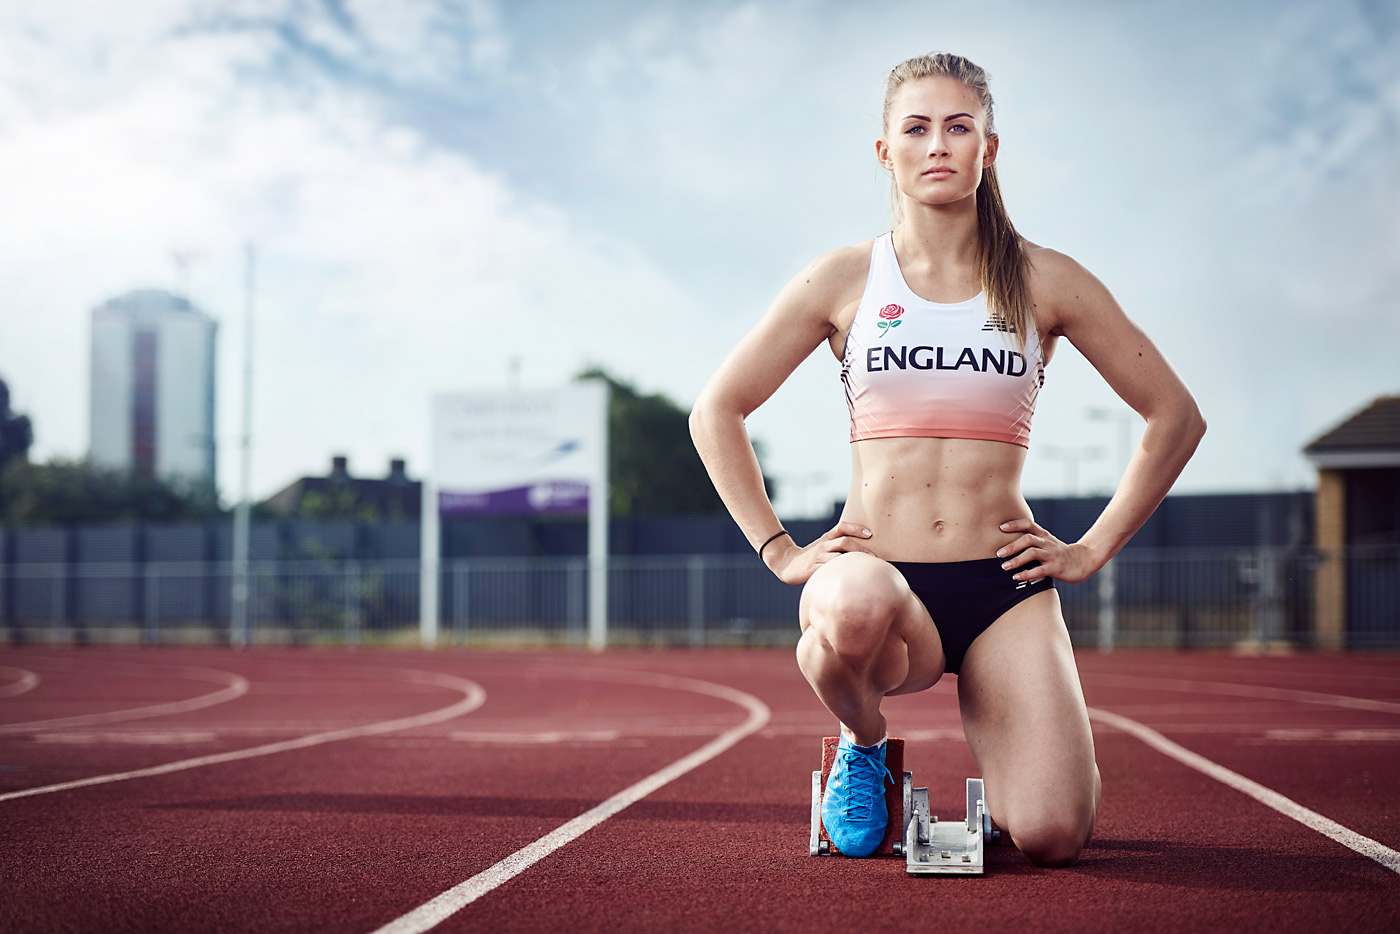 Rebecca Campsall in England running gear